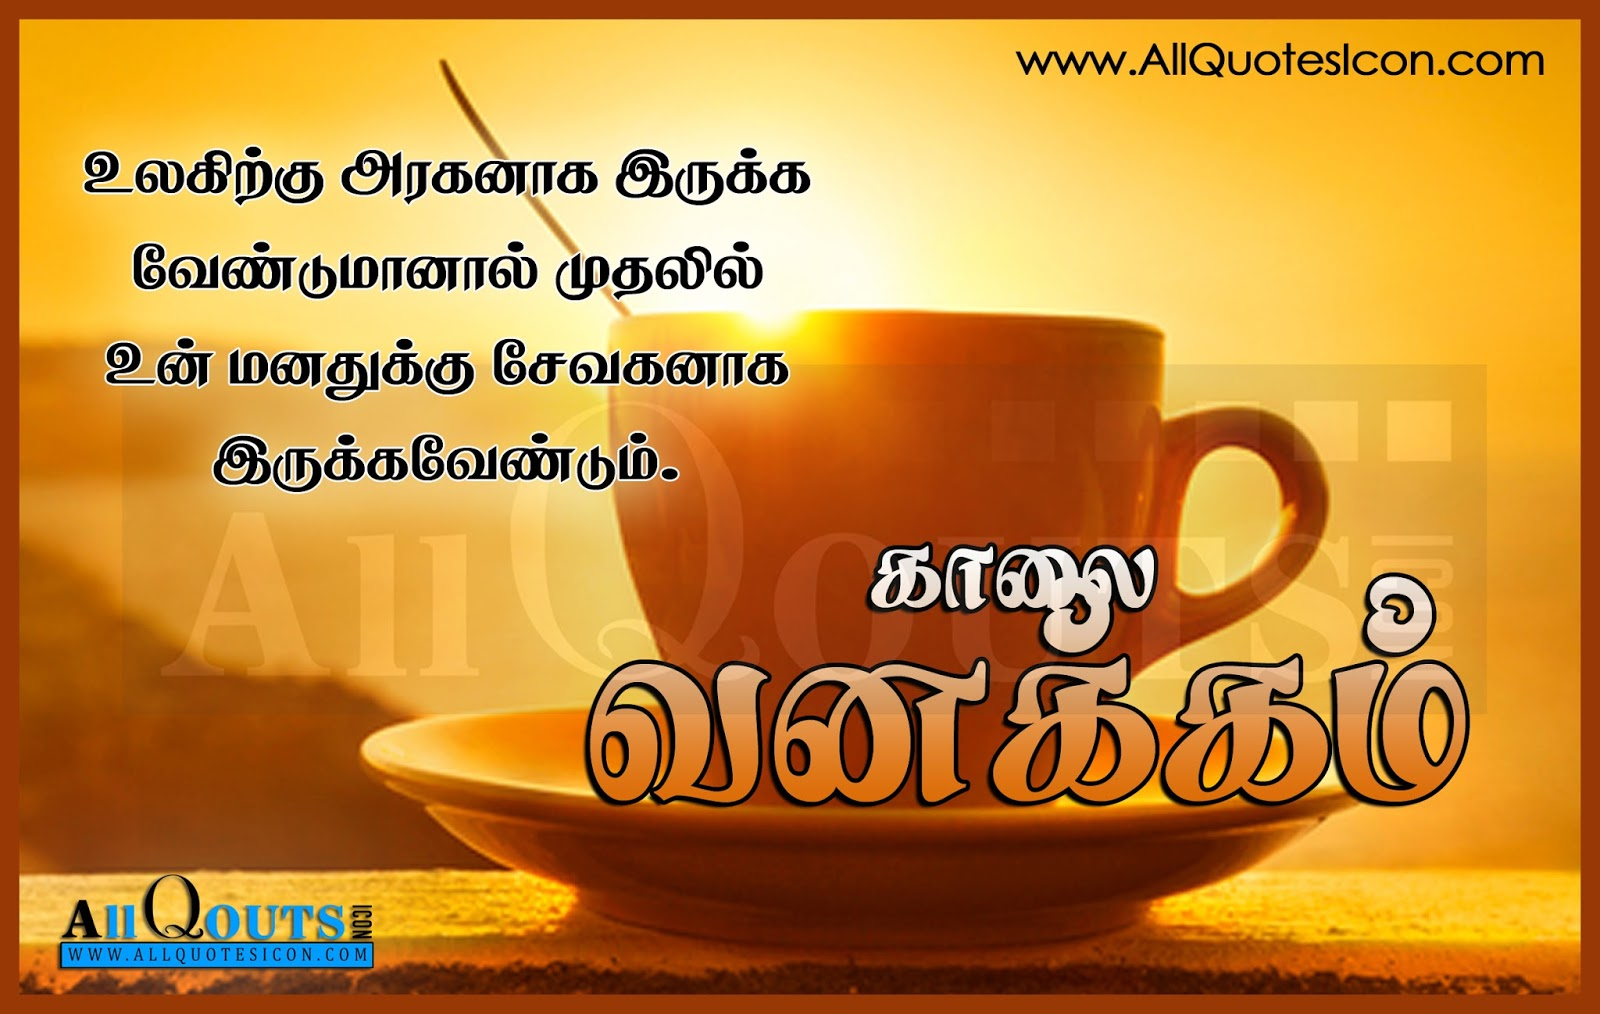 Good Morning Images And Quotes In Tamil Wwwallquotesiconcom